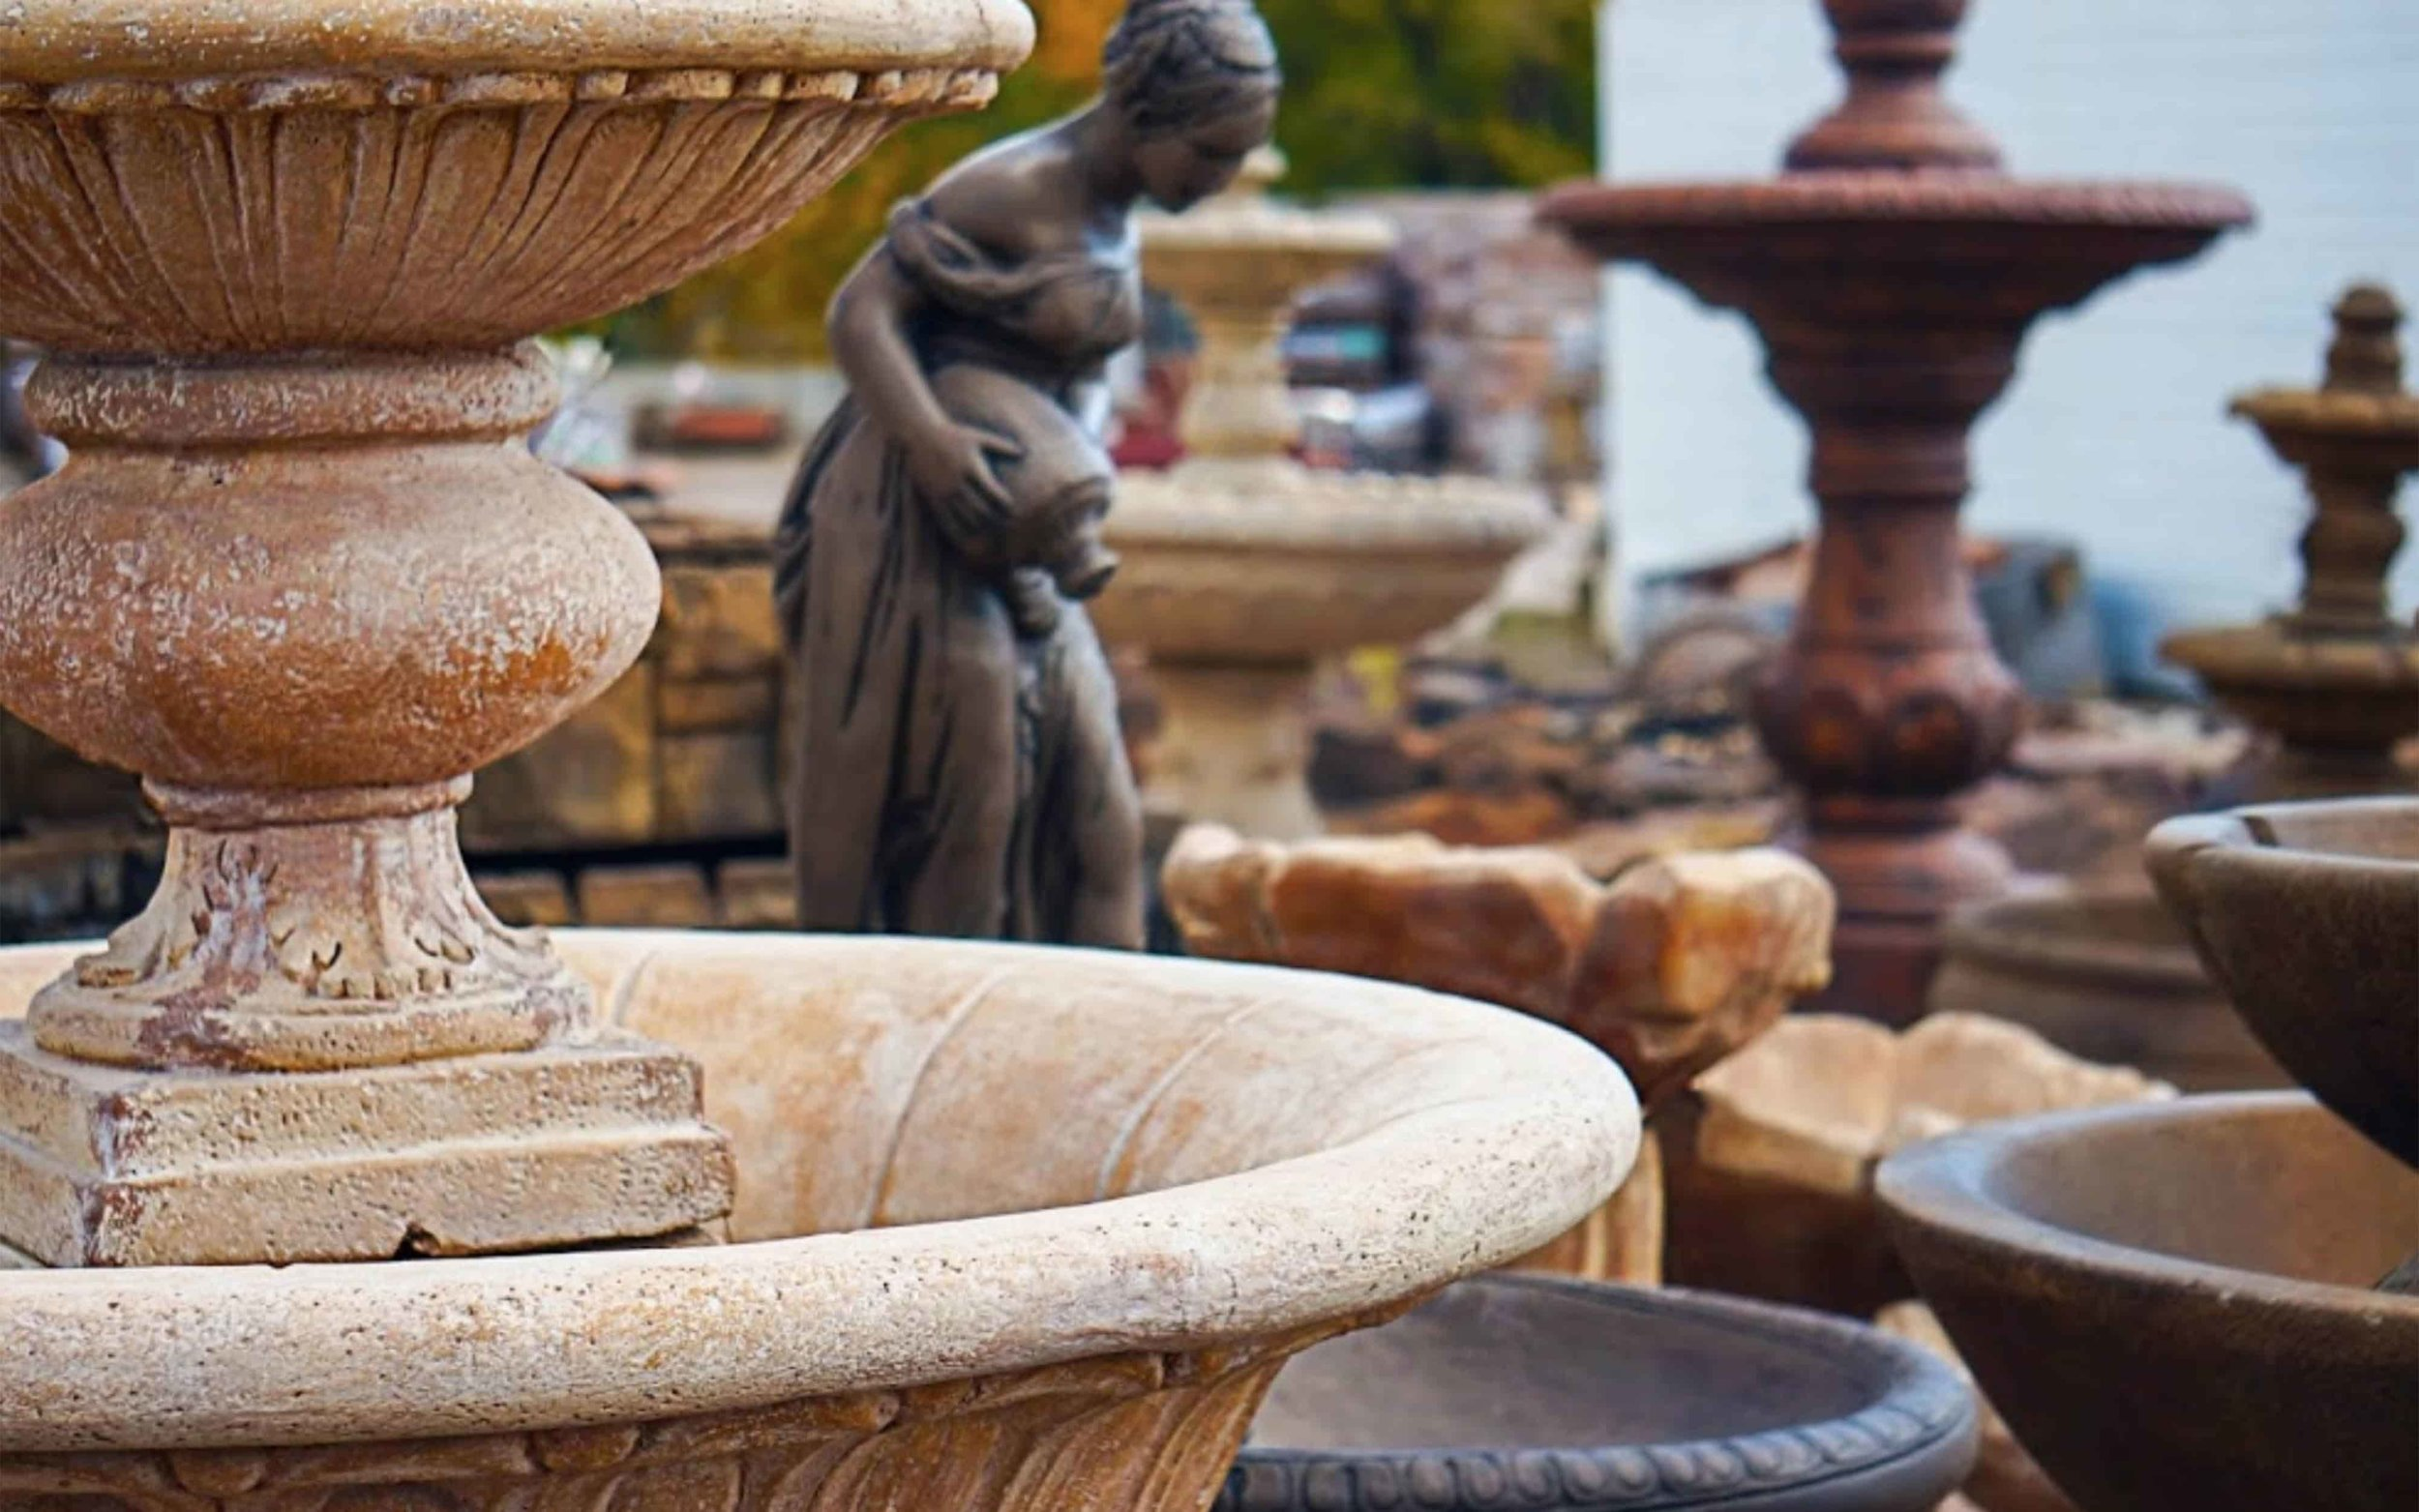 Statuary - C&C carries statuary of all sorts. From small accessories to large ornamental pieces.